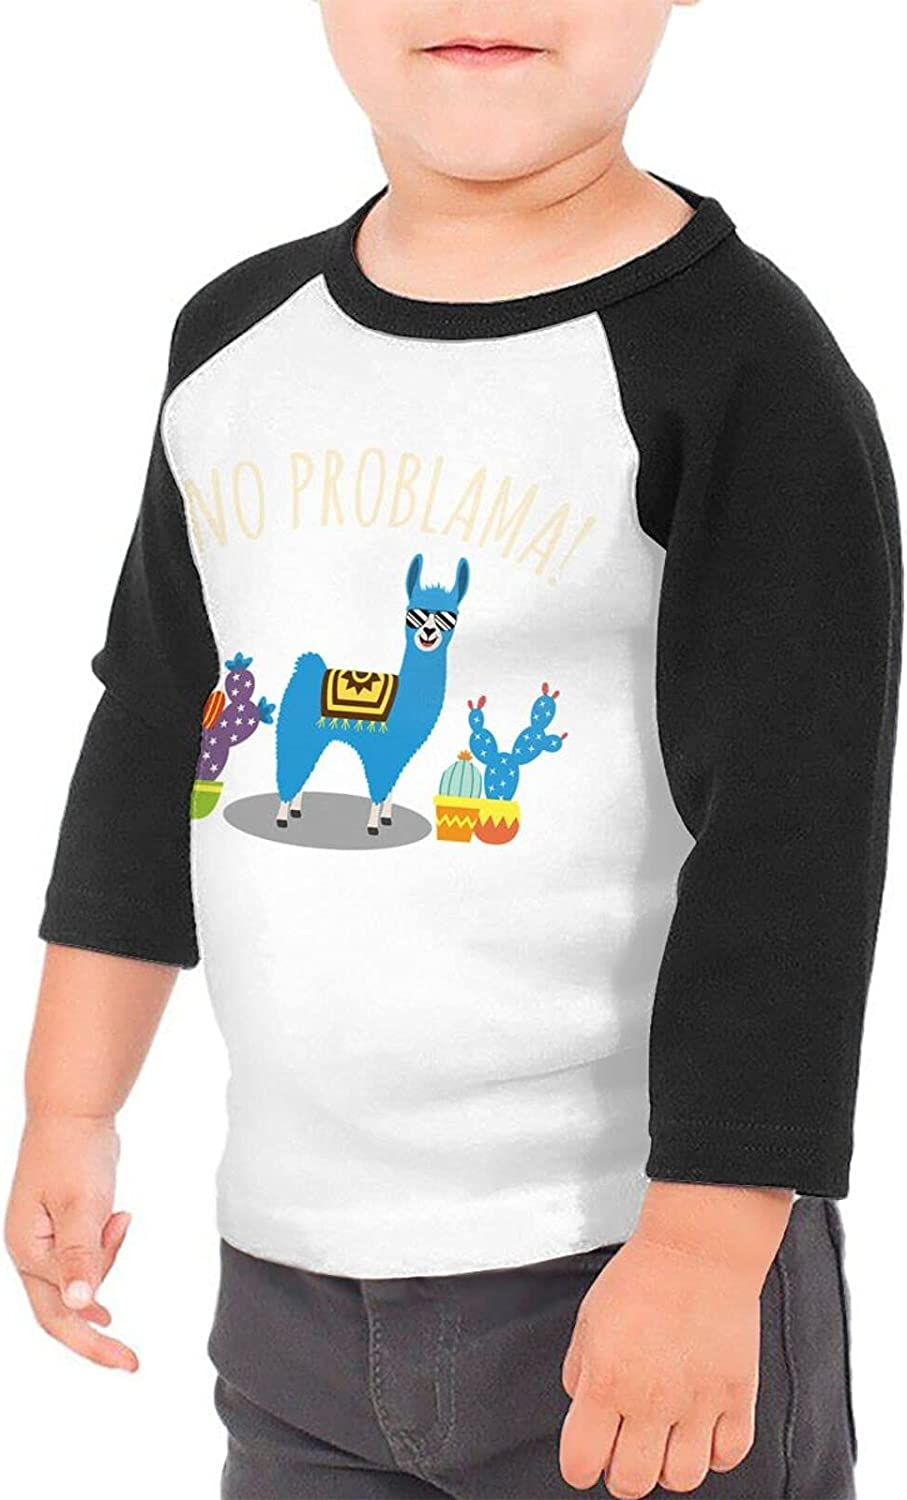 Cute Retro Vintage Alpaca Llama T-Shirts Novelty for Youth Tees with Cool Designs